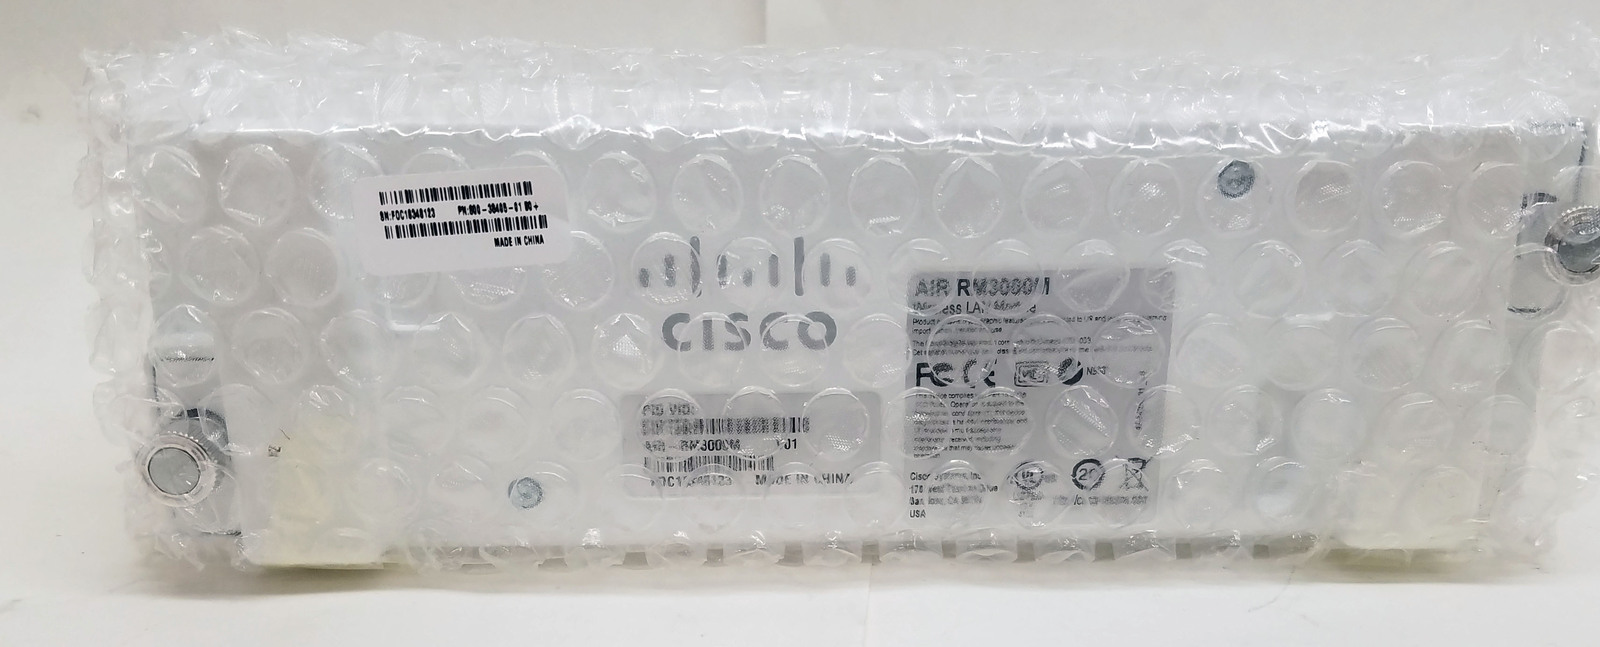 Cisco AIR-RM3000M Wireless LAN Security-Spectrum Intelligence Access Point Bin:5